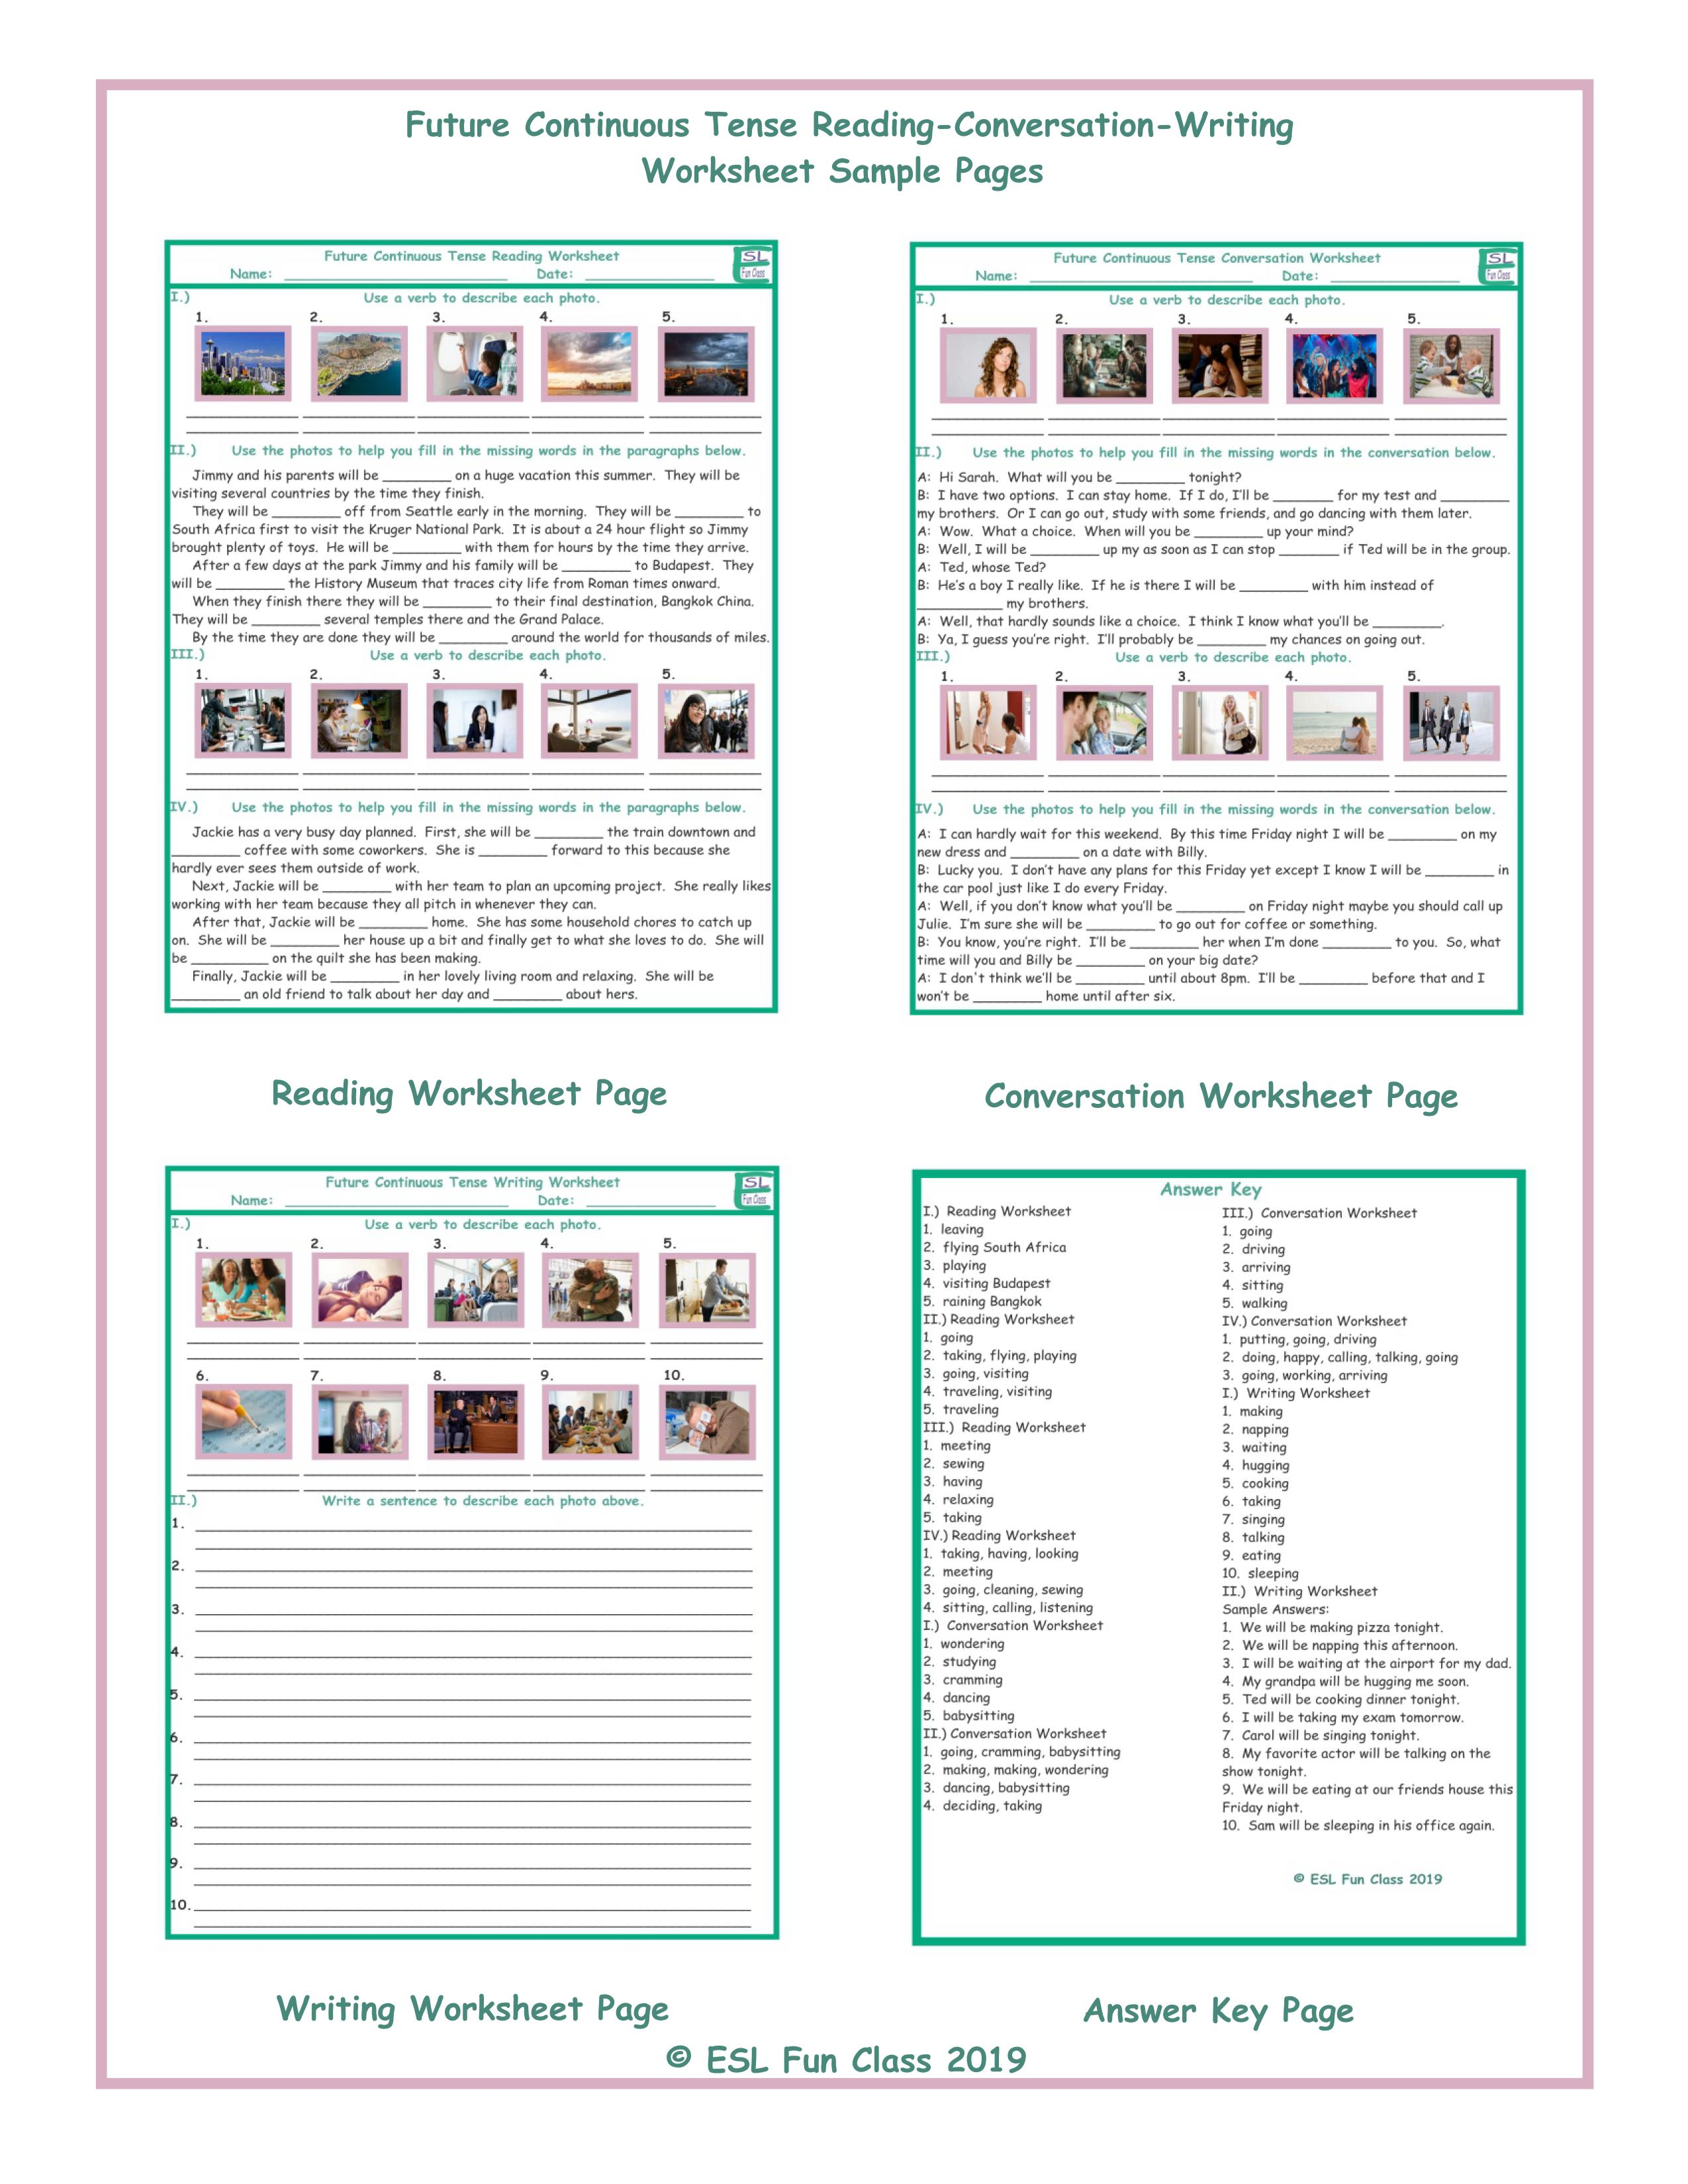 Future Continuous Tense Reading-Conversation-Writing Worksheets